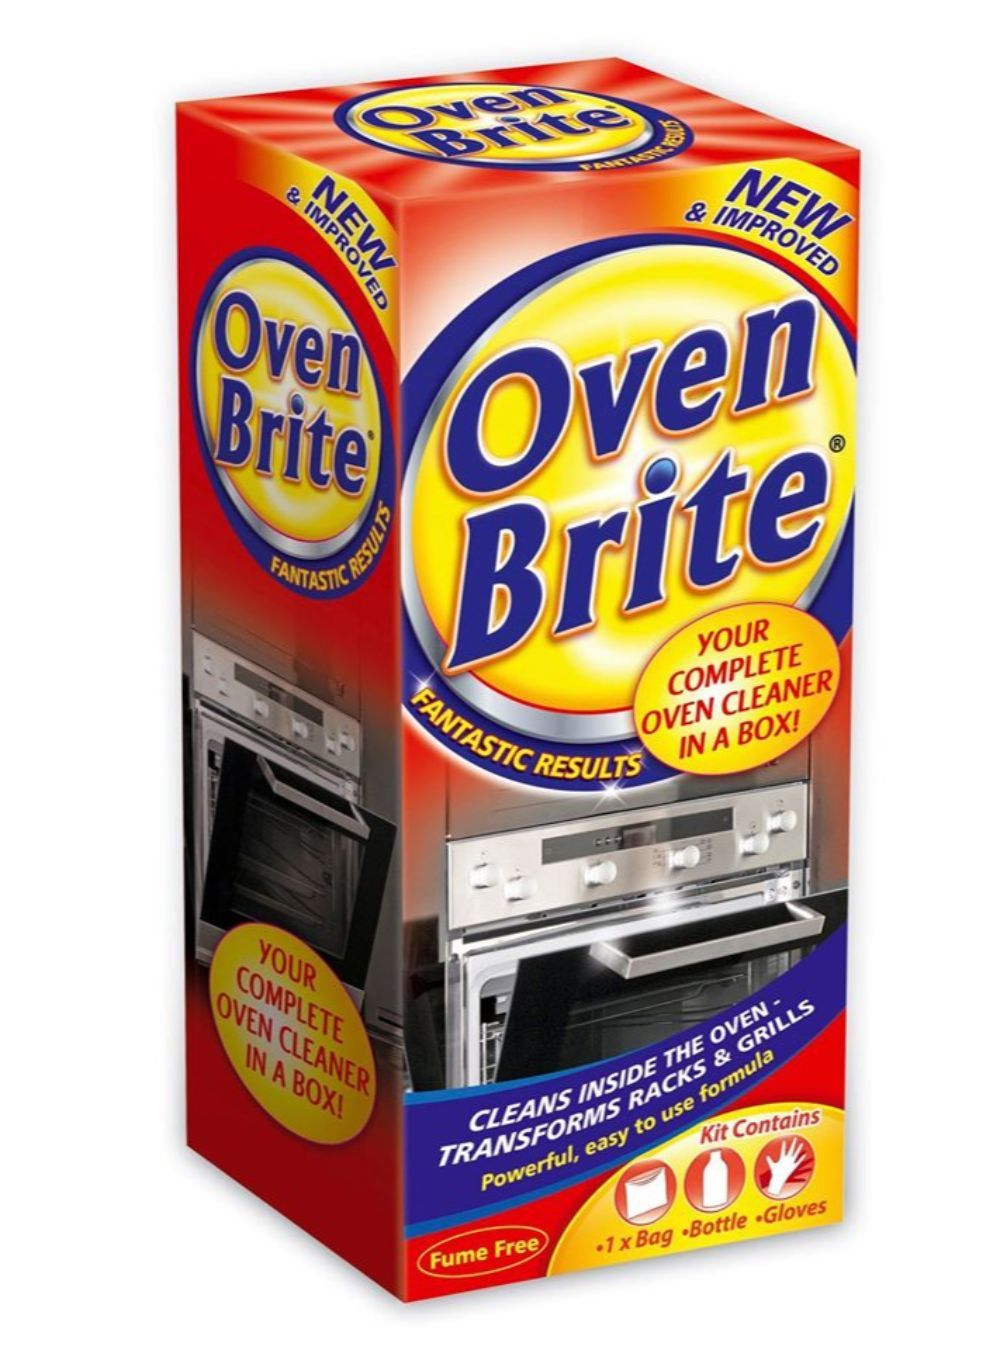 Complete oven cleaner in a box vivamk with lesley in